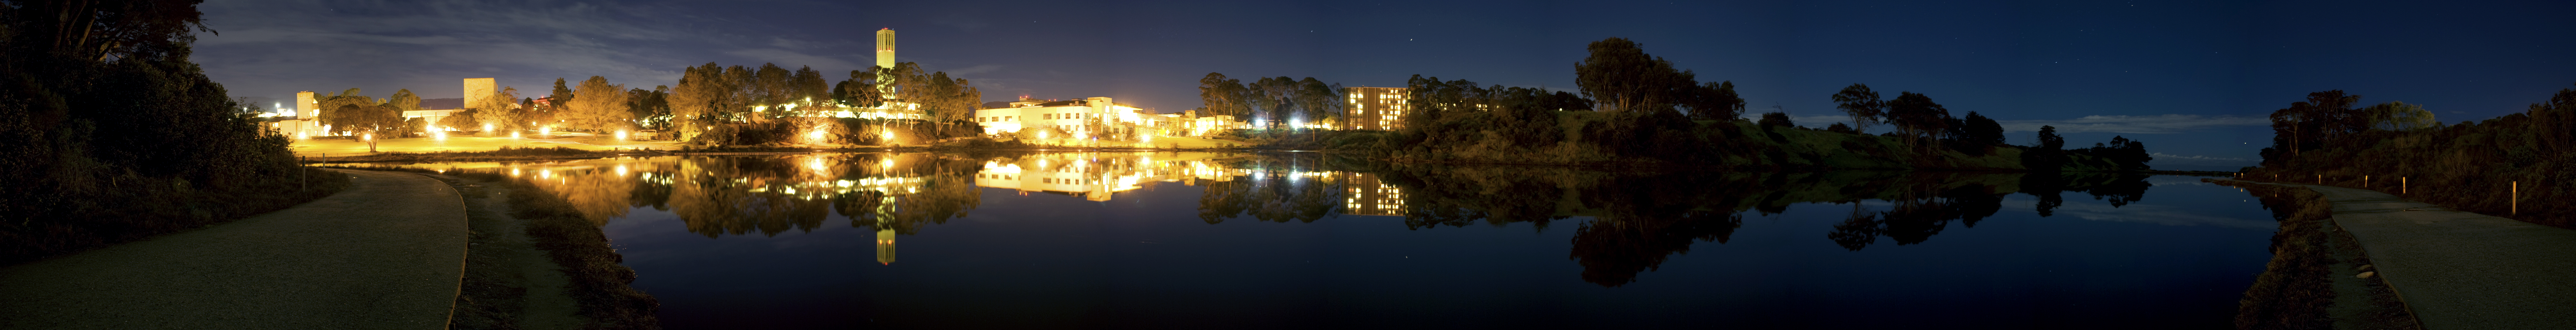 The UCSB lagoon on a moonlit night.